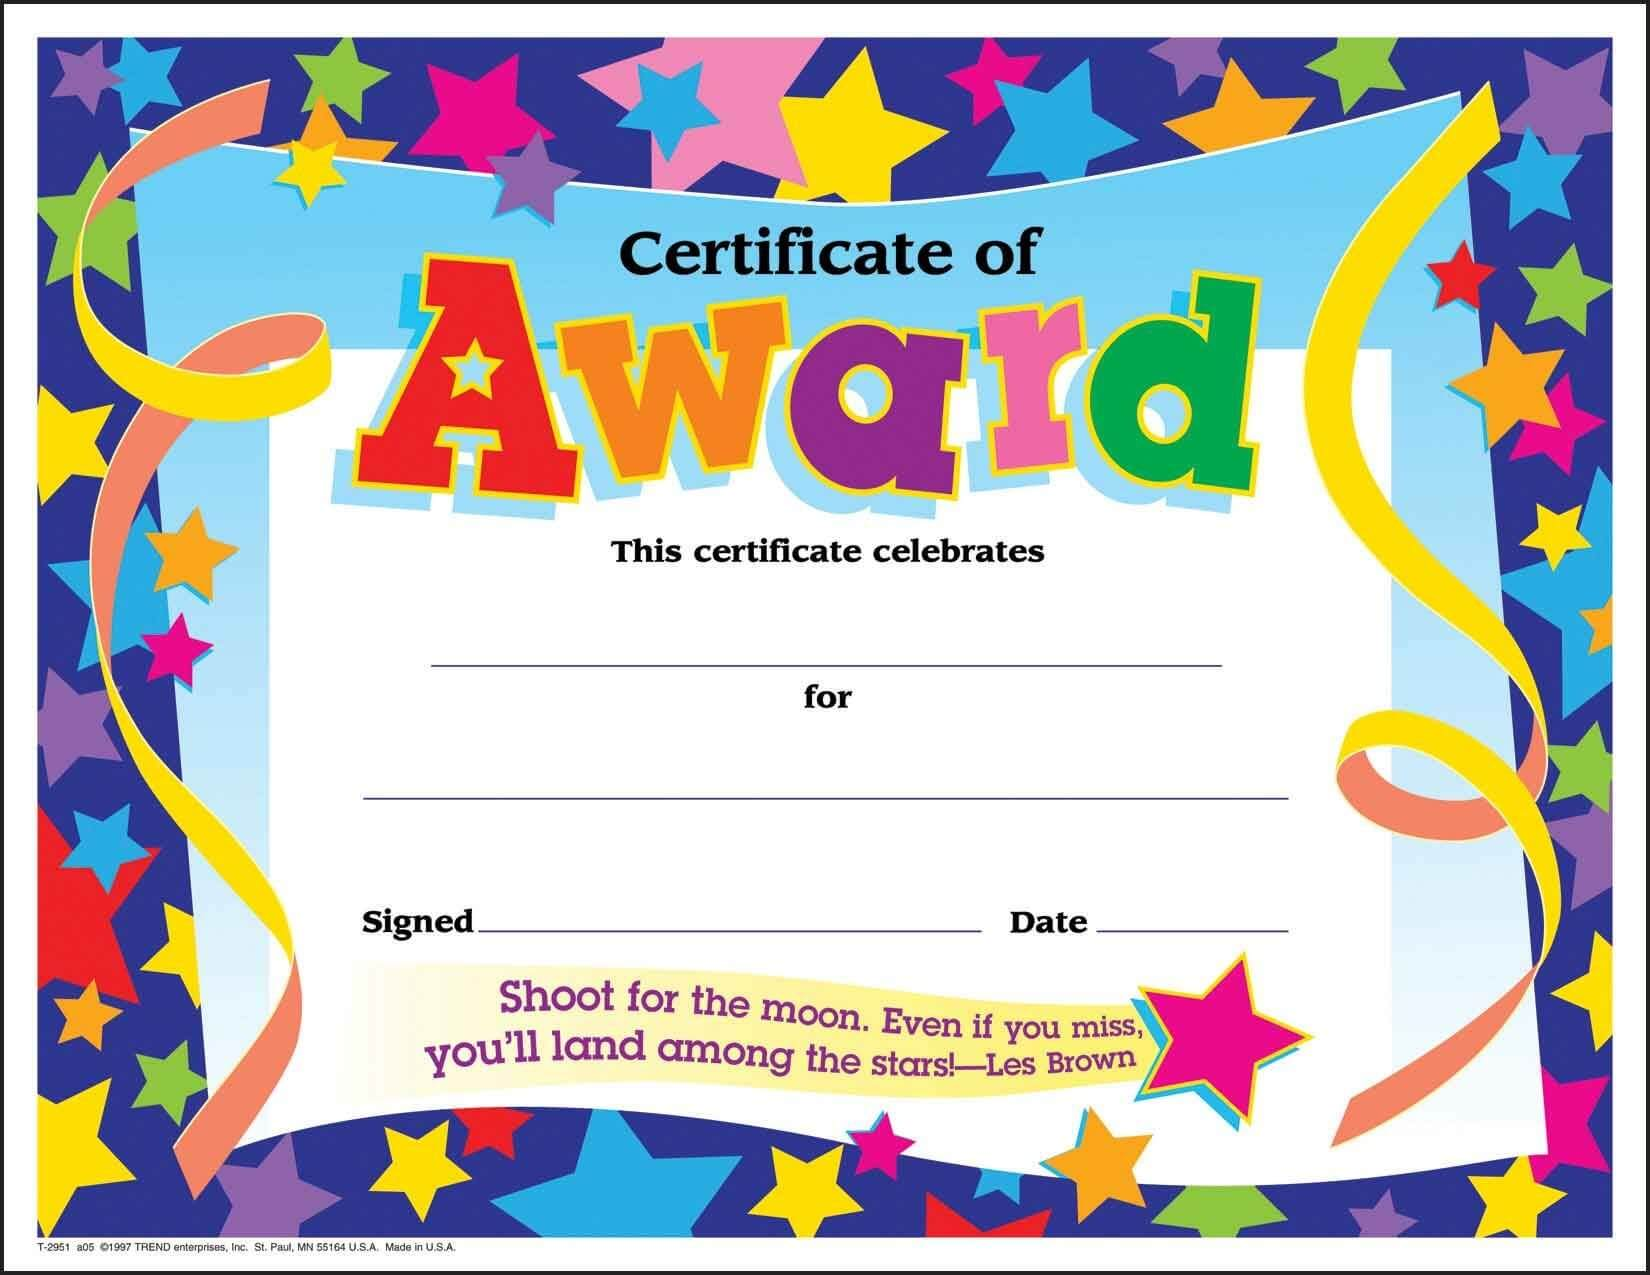 Certificate Template For Kids Free Certificate Templates For Children's Certificate Template